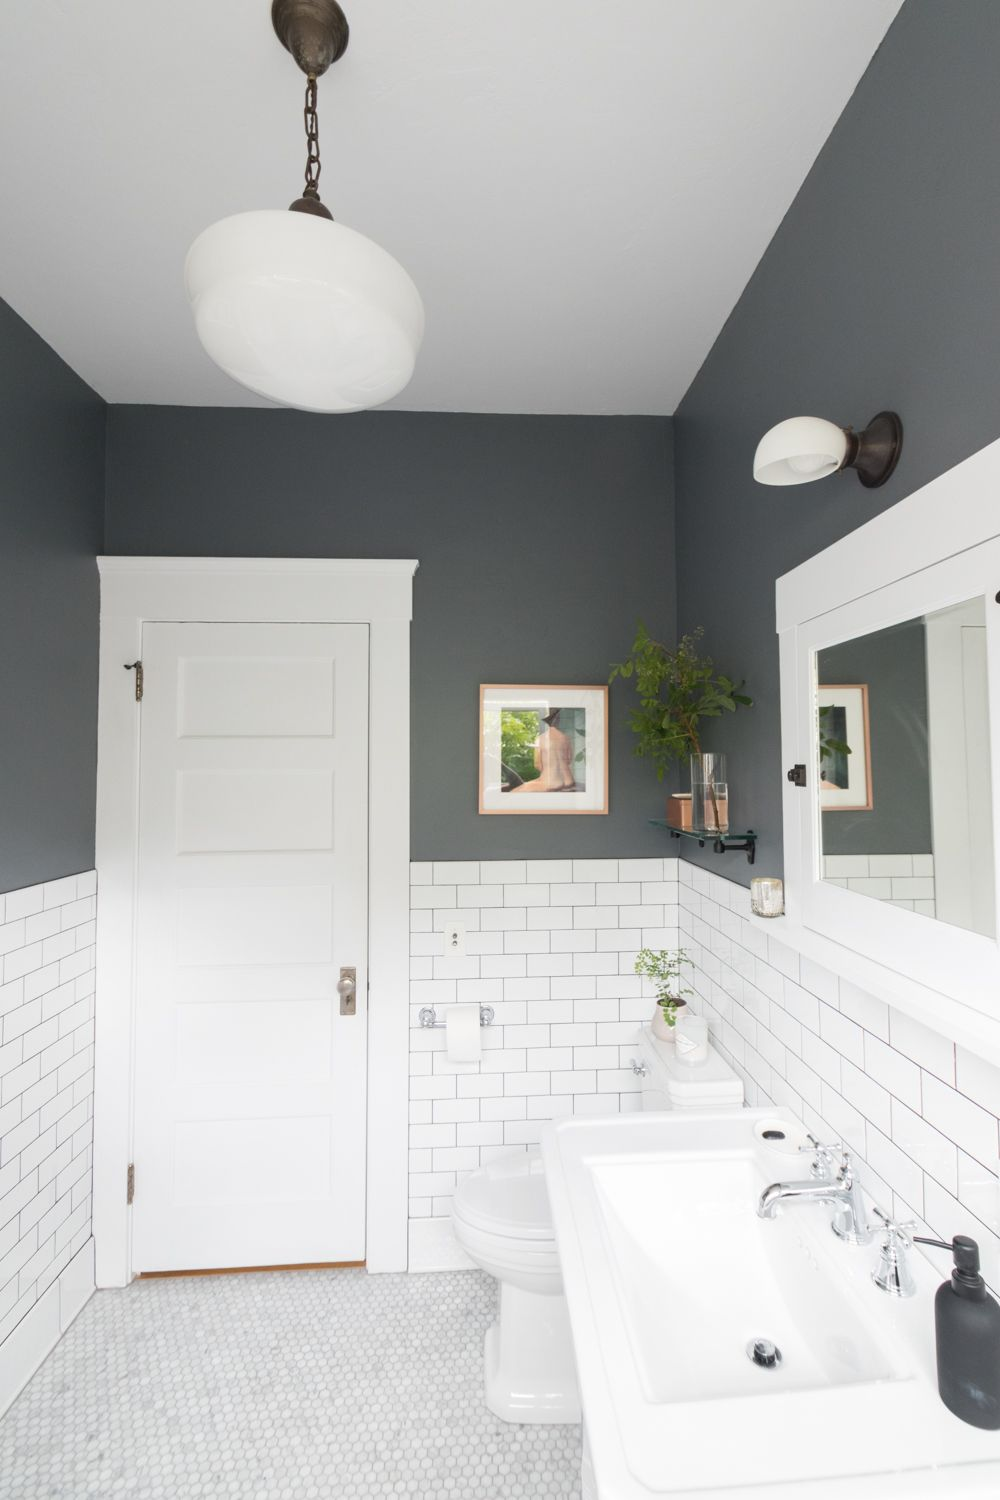 The Gold Hive Bathroom After   new home   Pinterest   Bathroom ...